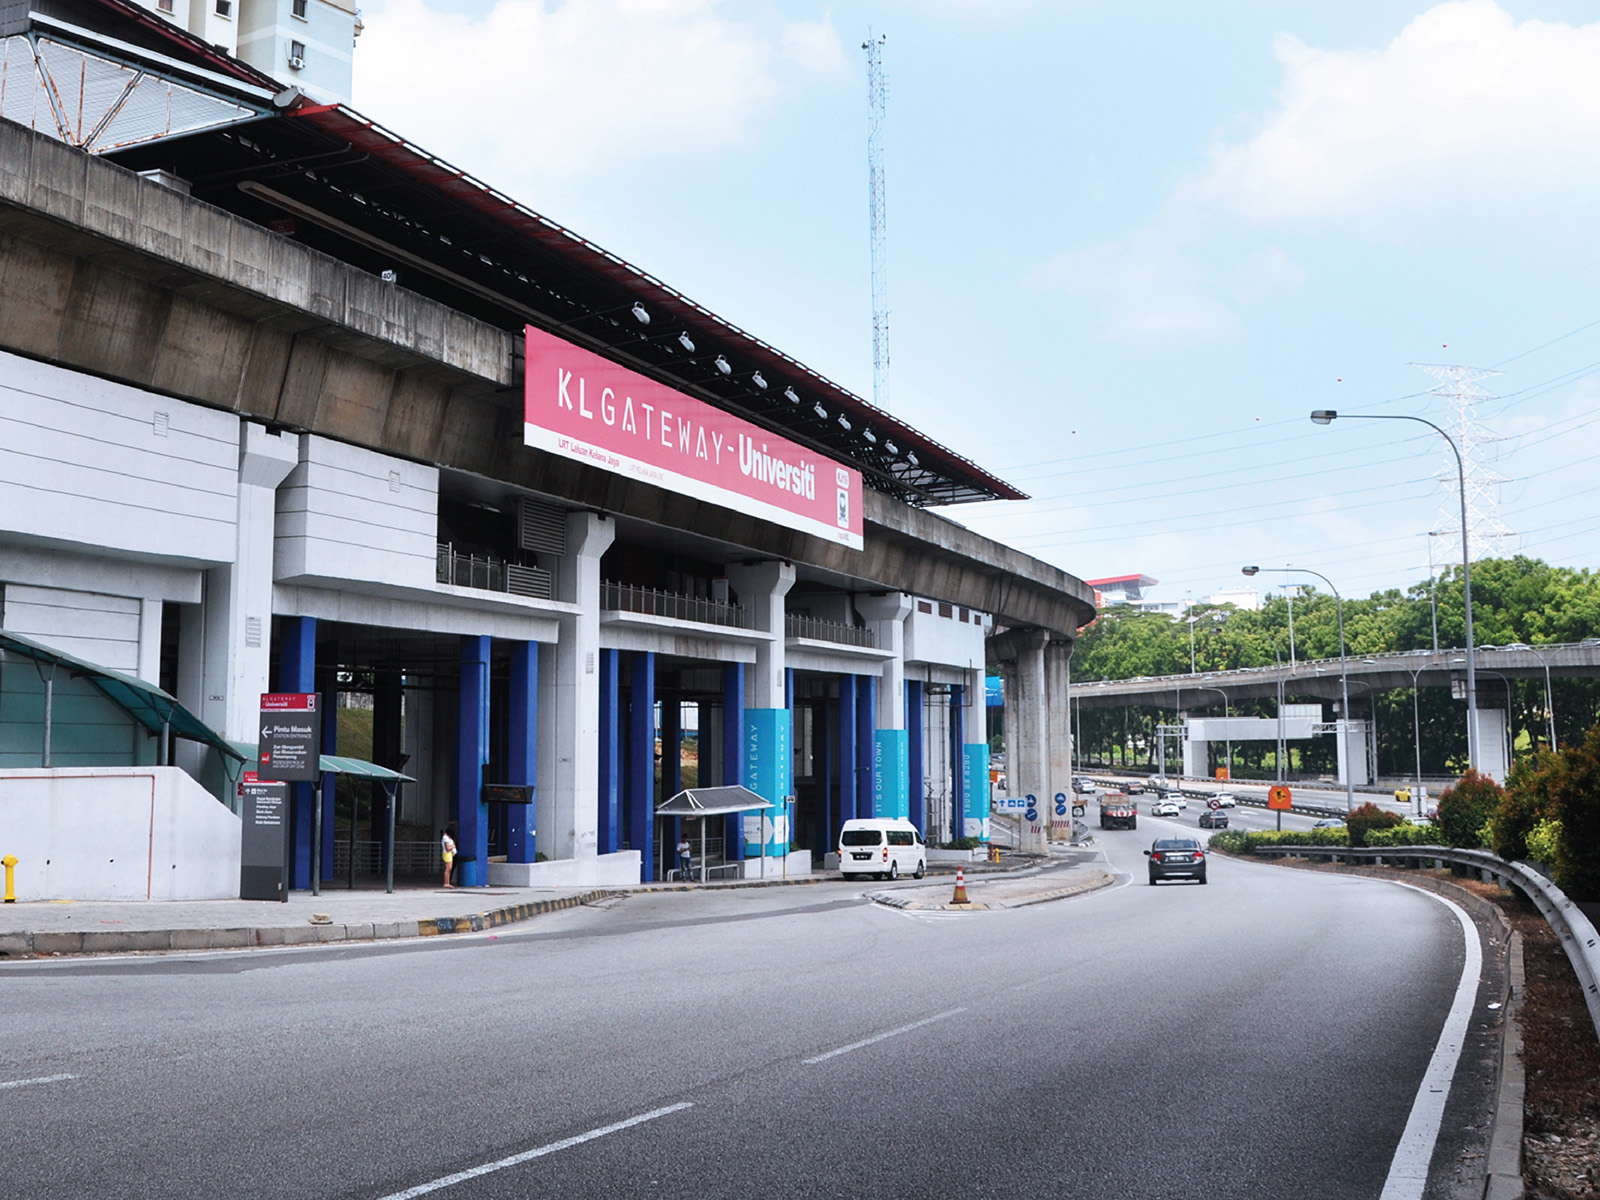 KL Gateway by Suezcap train station brand advertisement takeover and name change to KL Gateway - Universiti signage and pillar wrapped with brand ad